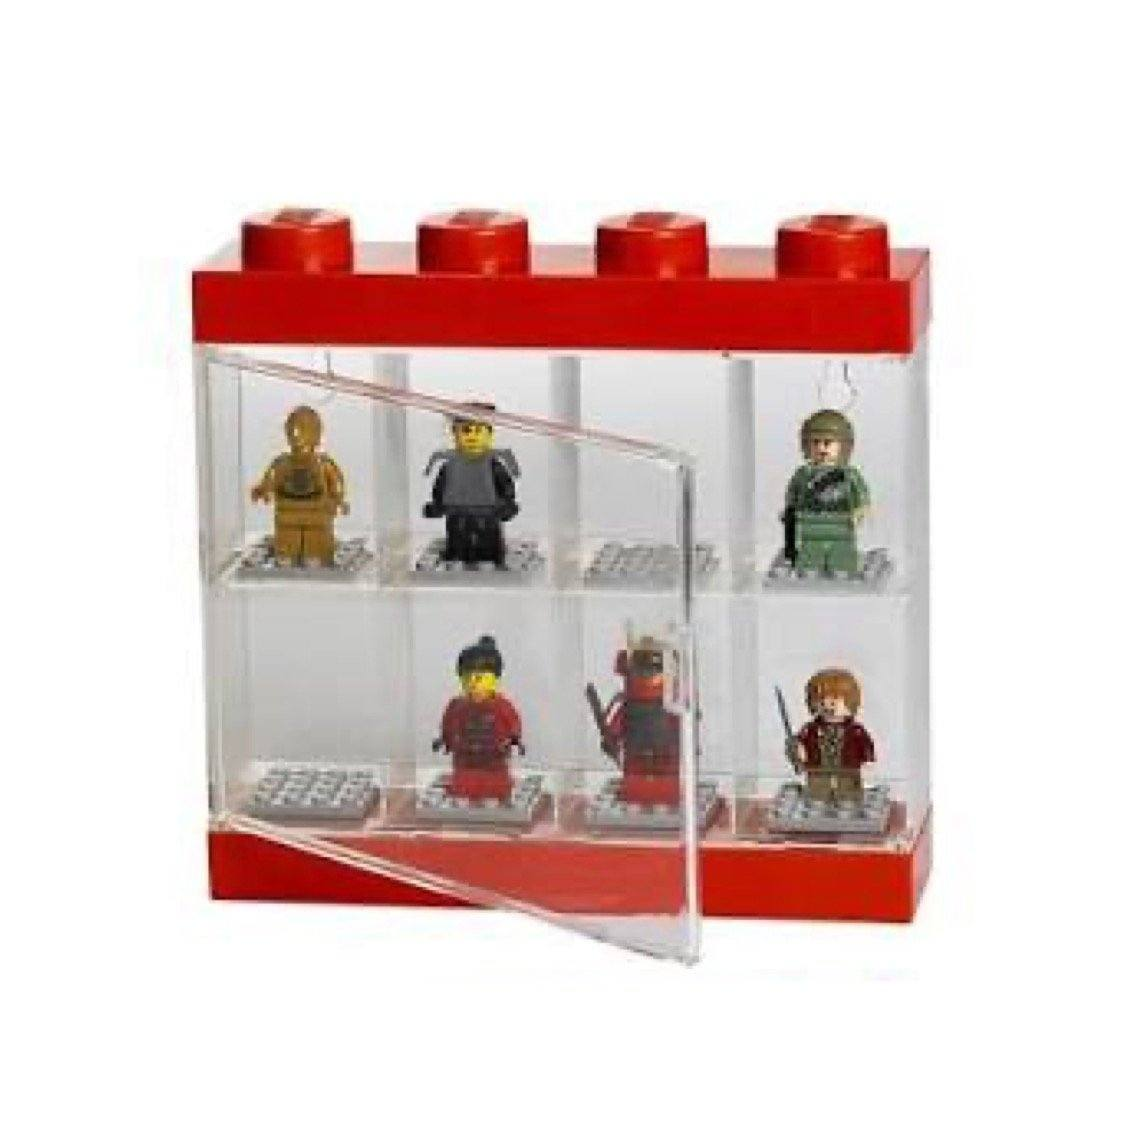 LEGO Minifigure Display Case 8 – Red Toys LEGO